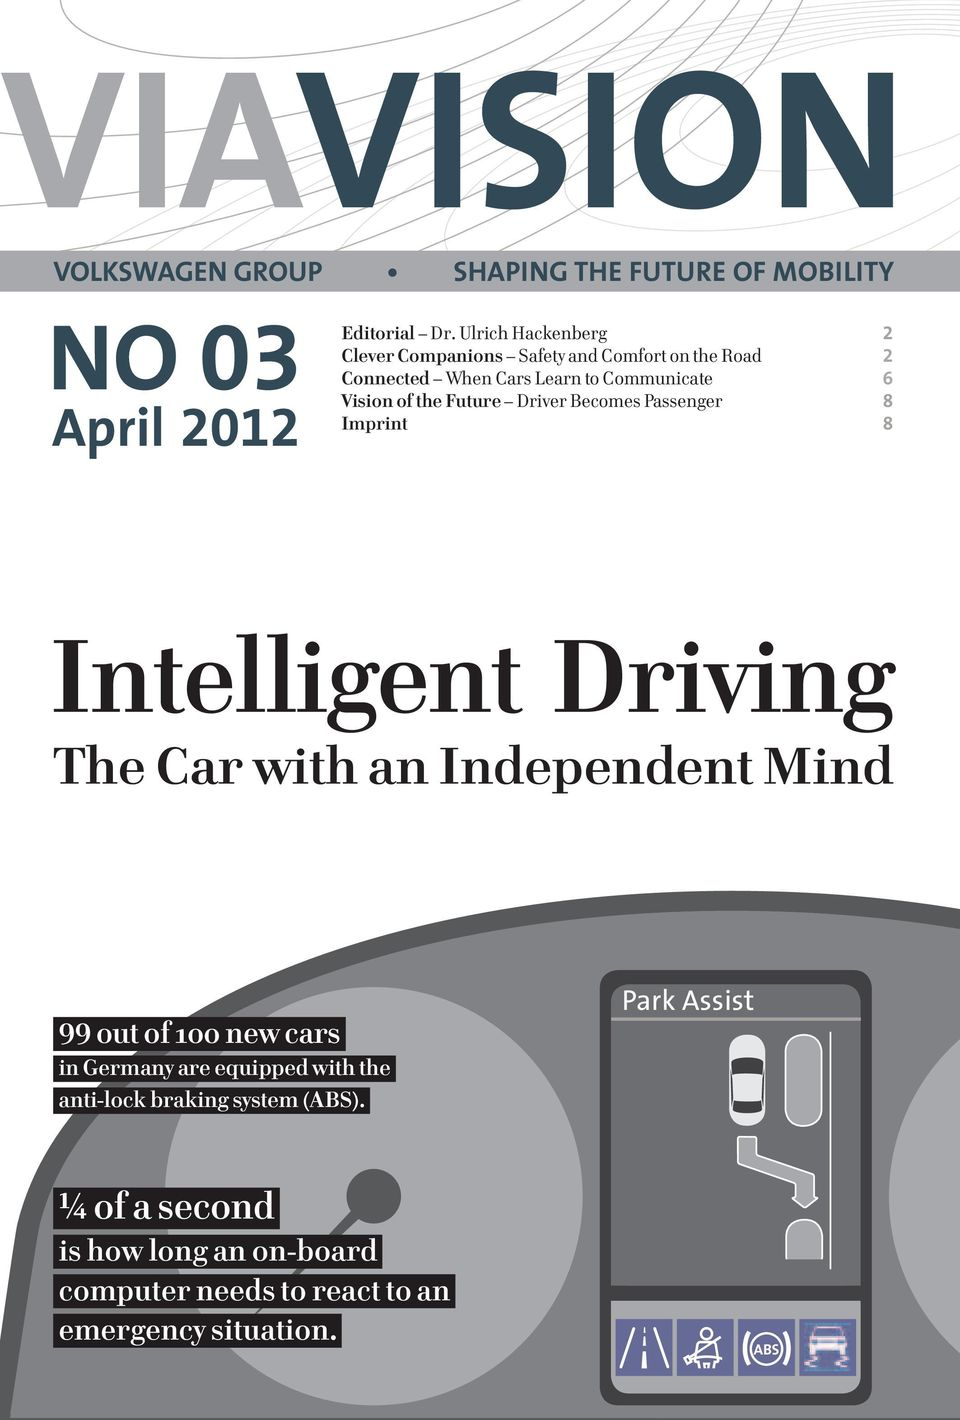 the Future Driver Becomes Passenger 8 Imprint 8 Intelligent Driving The Car with an Independent Mind 99 out of 1oo new cars